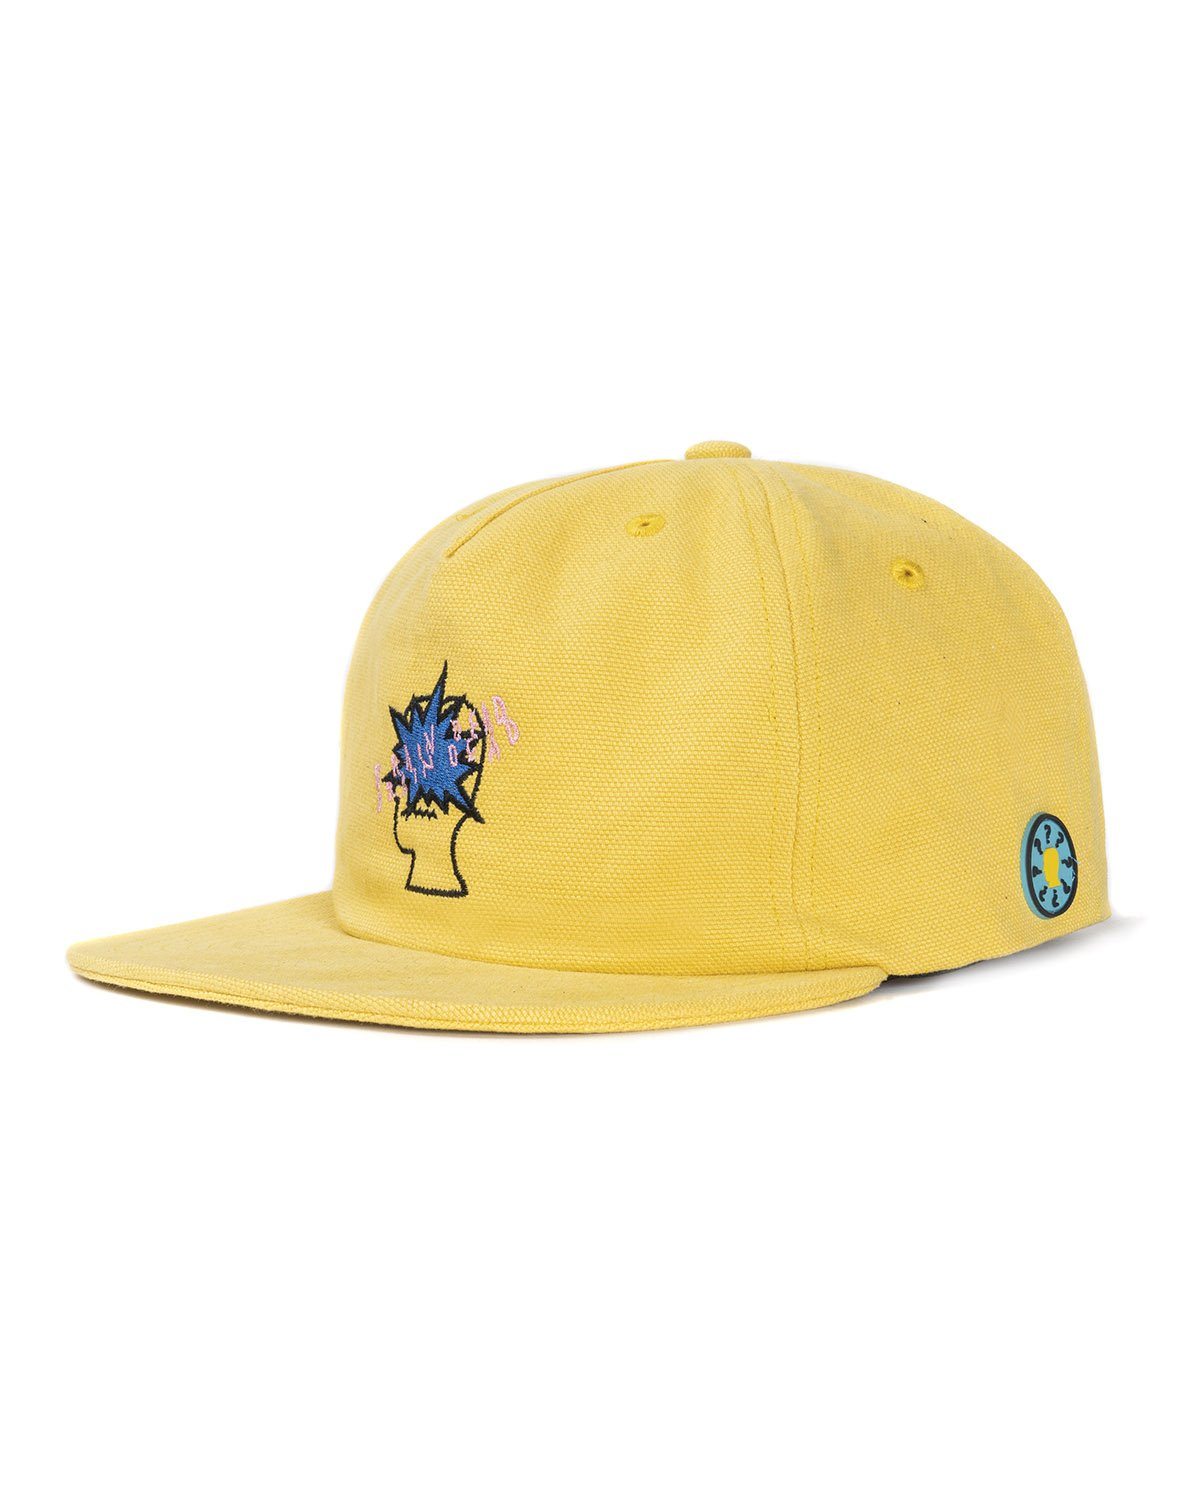 BANG LOGO STRAP BACK HAT - YELLOW